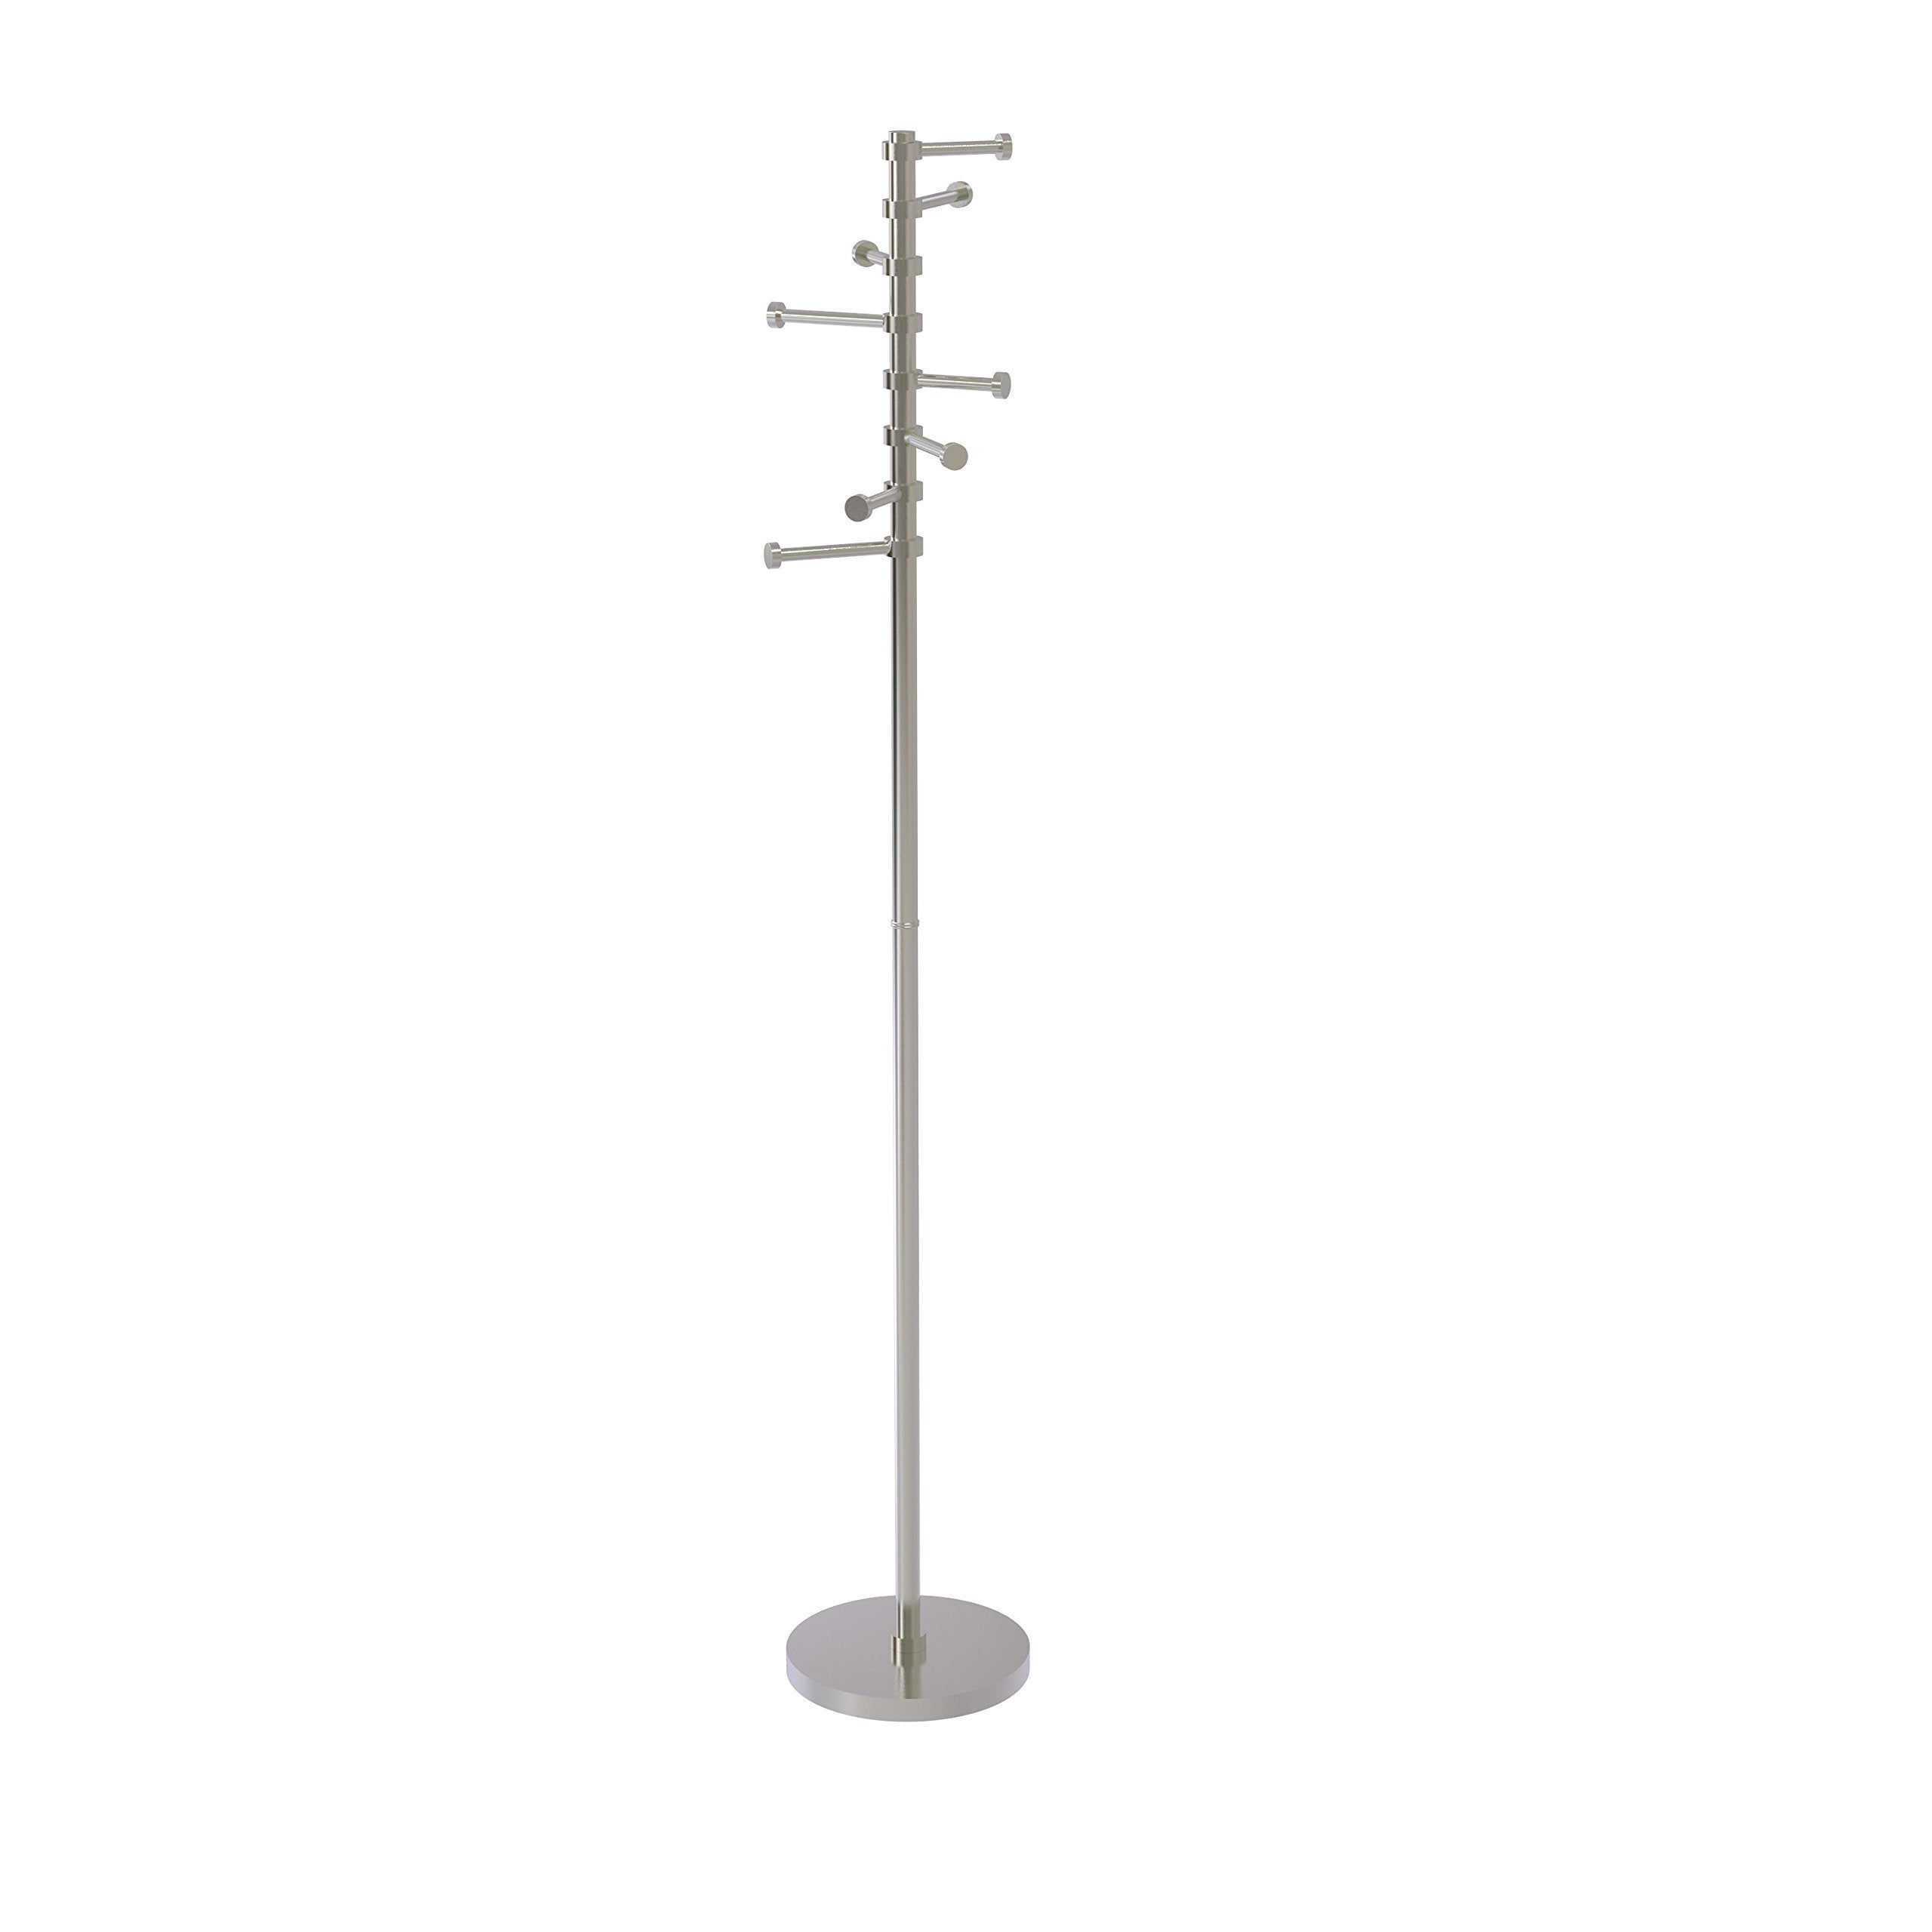 Allied Brass CS-1-SN Free Standing Coat Rack with Six Pivoting Pegs